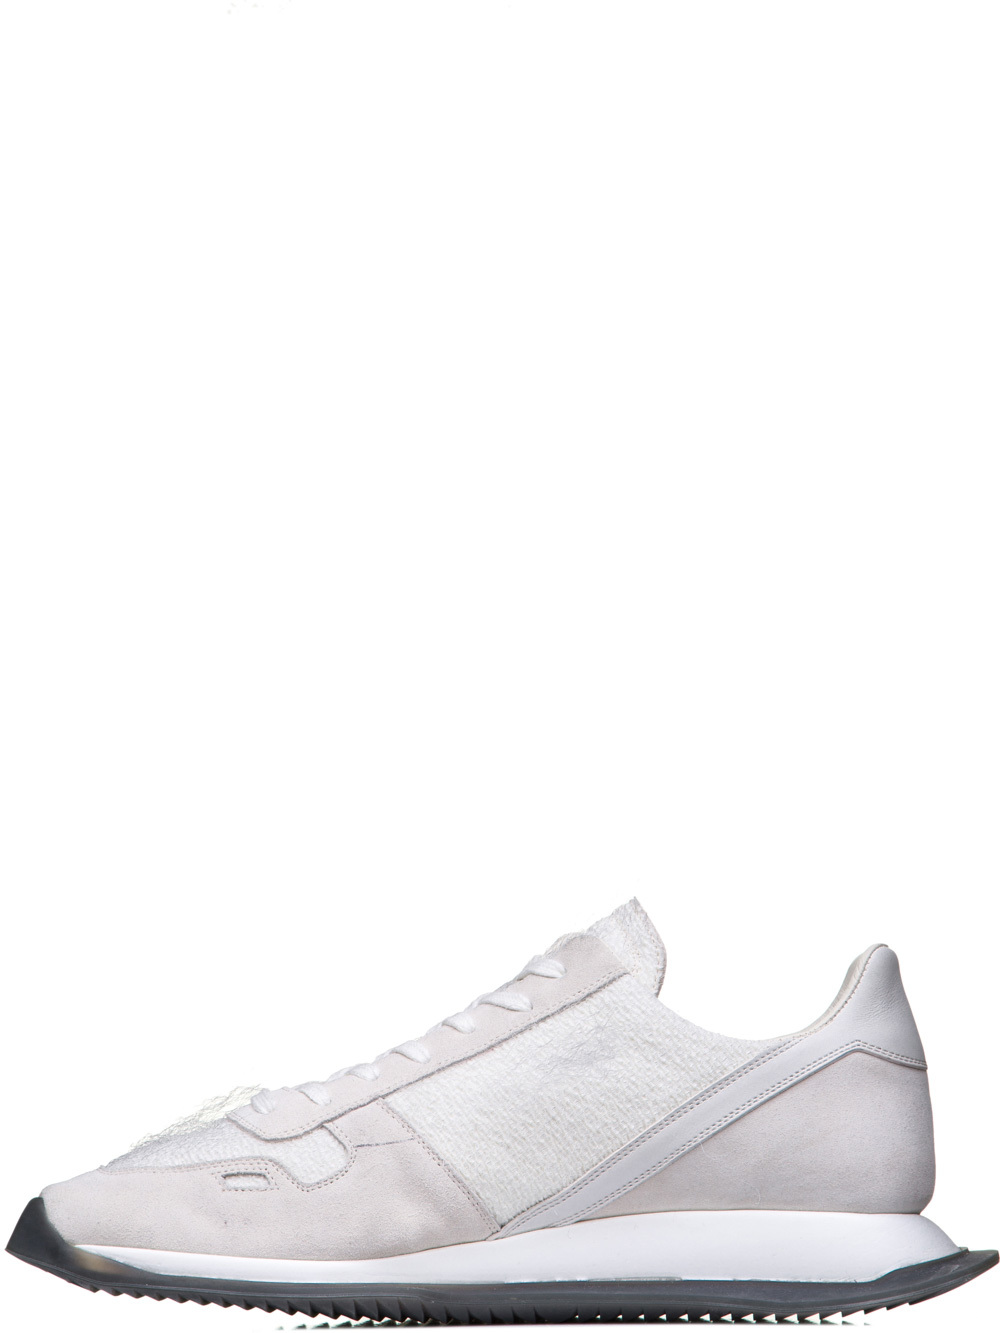 RICK OWENS OFF-THE-RUNWAY RUNNERS IN MILK WHITE PLASTIC SHEARLING